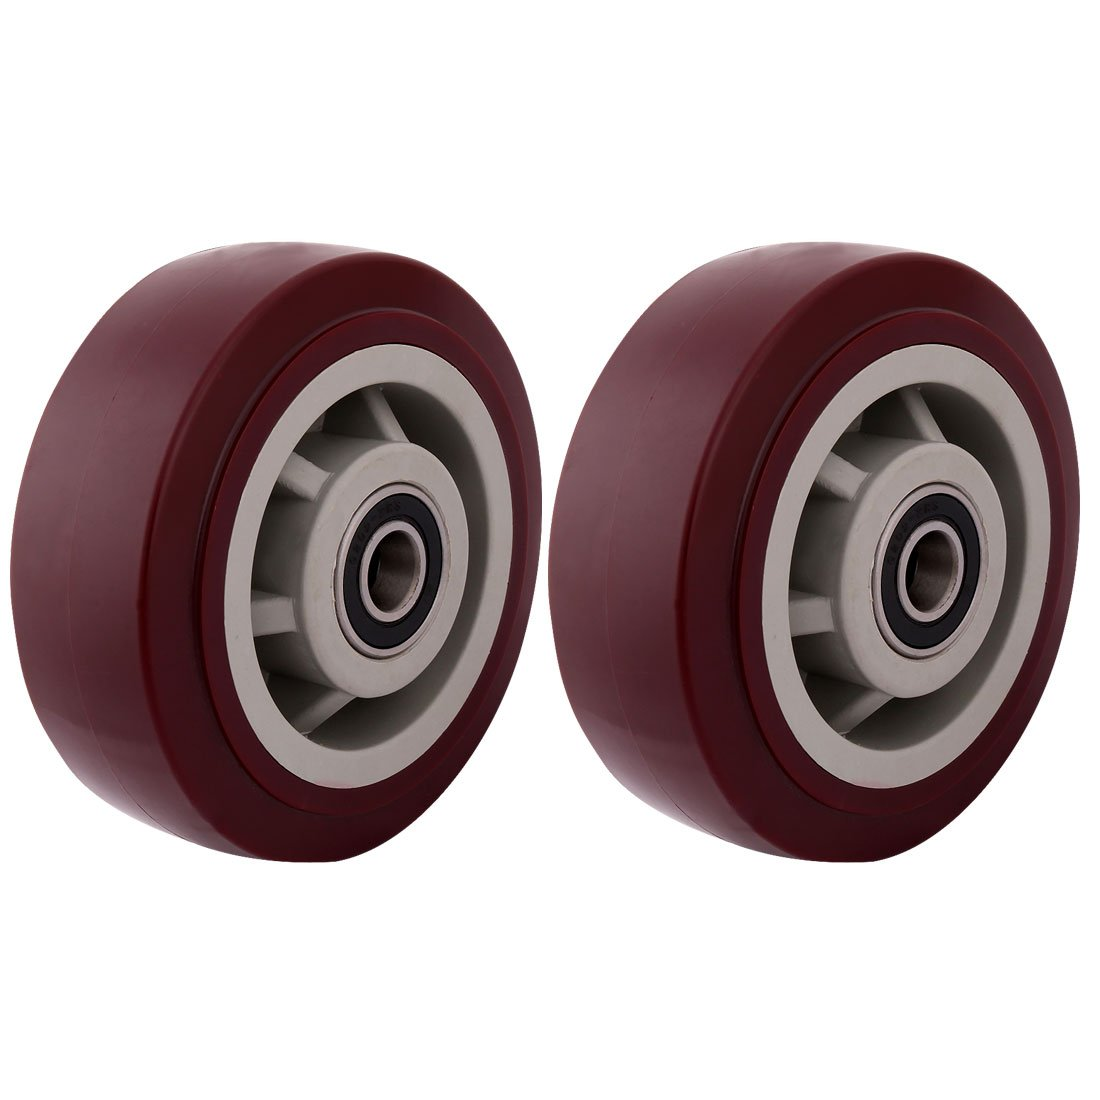 uxcell 5'' Polyurethane on Hard plastic Wheel, Replacement For Carts, Furniture, Dolly, Workbench, Trolley, Wheel Only, Red Set of 2